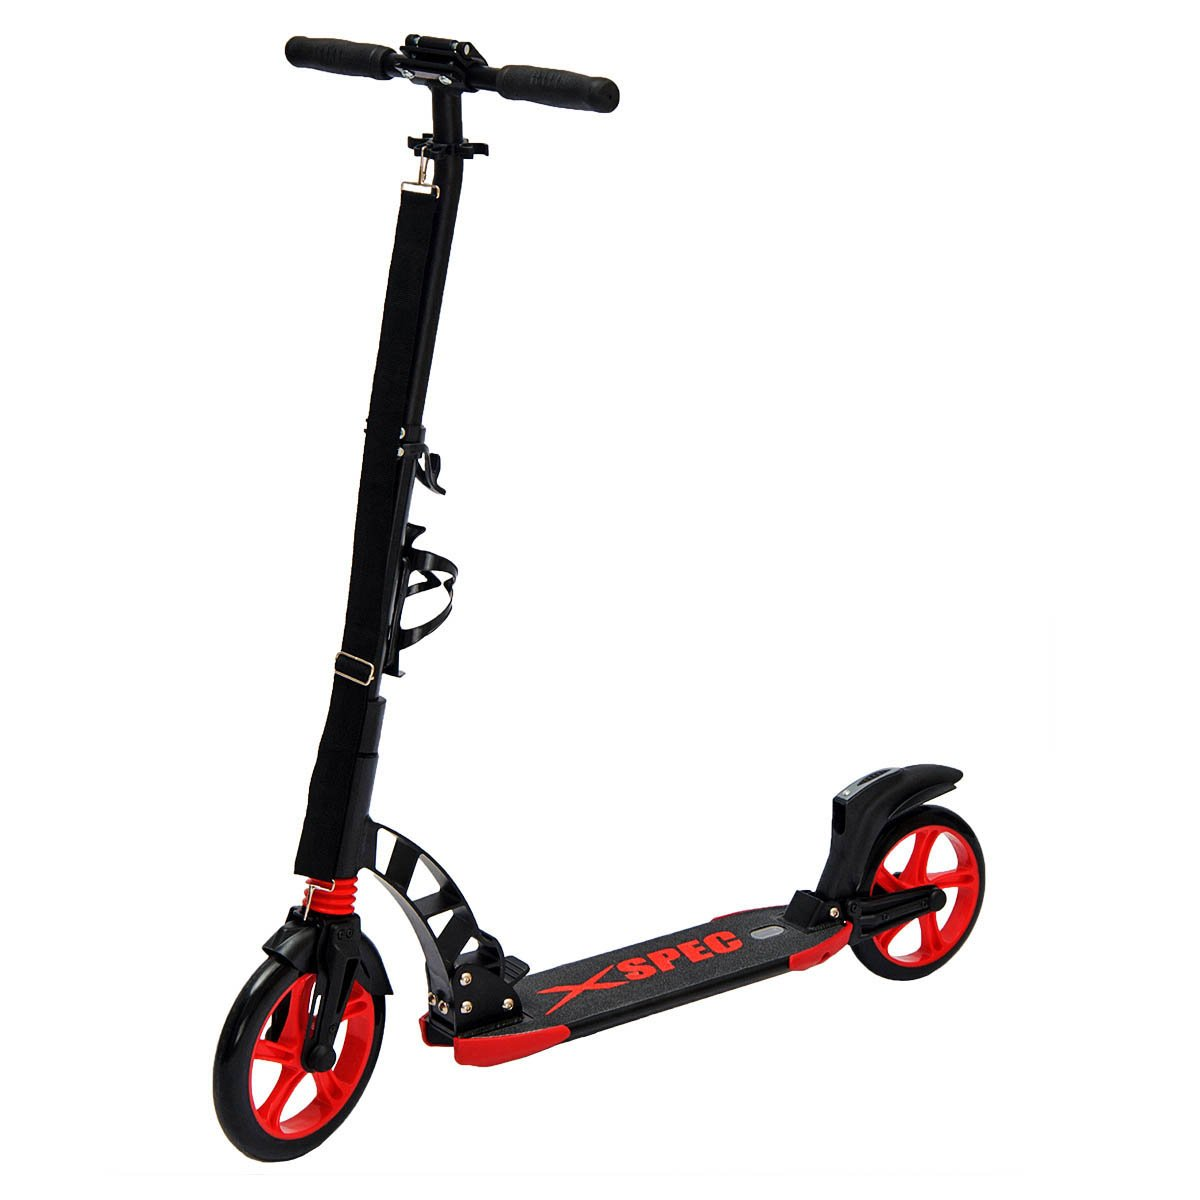 Xspec 922 Foldable Adult Kick Street Scooter w/ Full Suspension & Rear Wheel Braking System, Supports 220 lbs, City Urban Commuter Street Push Scooter, Aluminum Frame Matte Black and Red